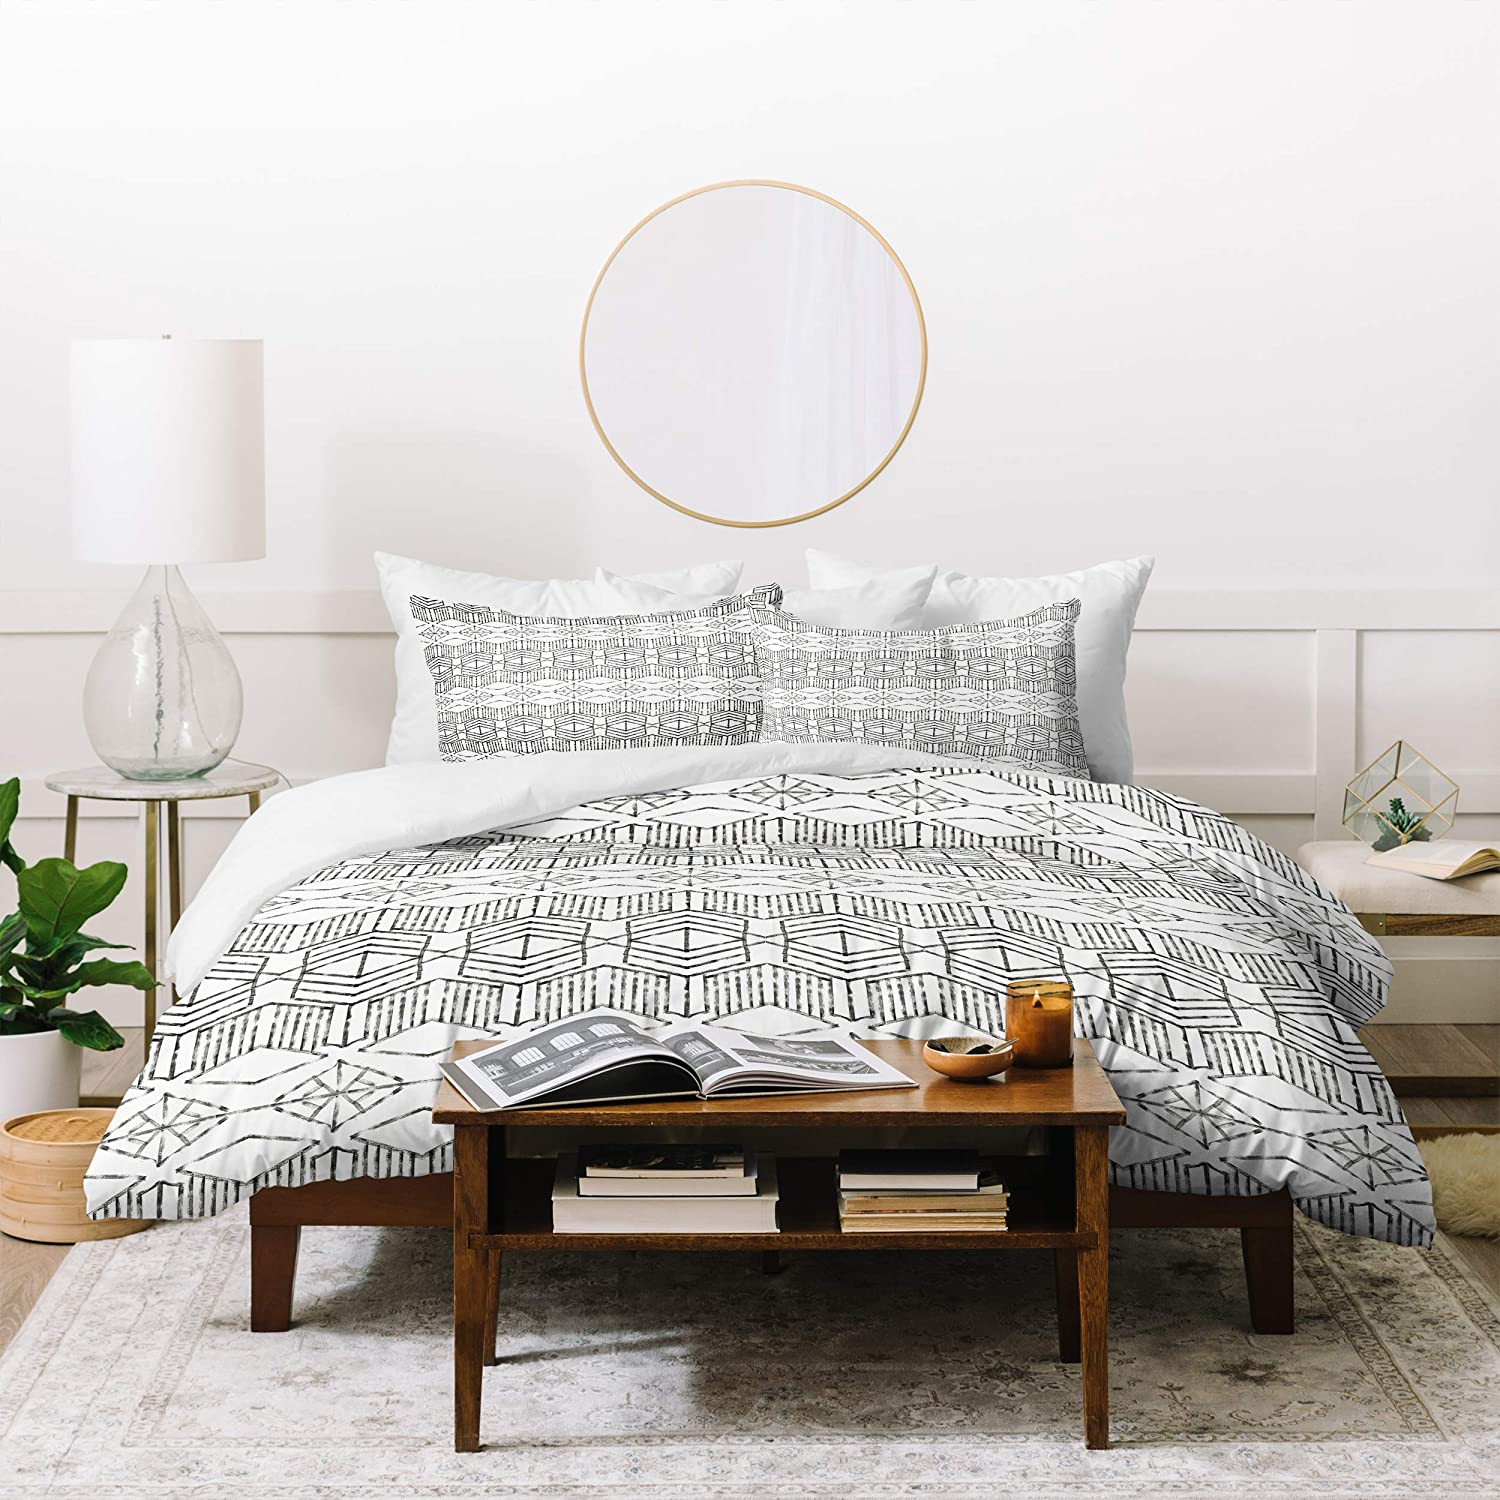 Deny Designs Dash and Ash Cassiopeia Set Duvet 大幅値下げランキング Two Pillow お買い得品 with S